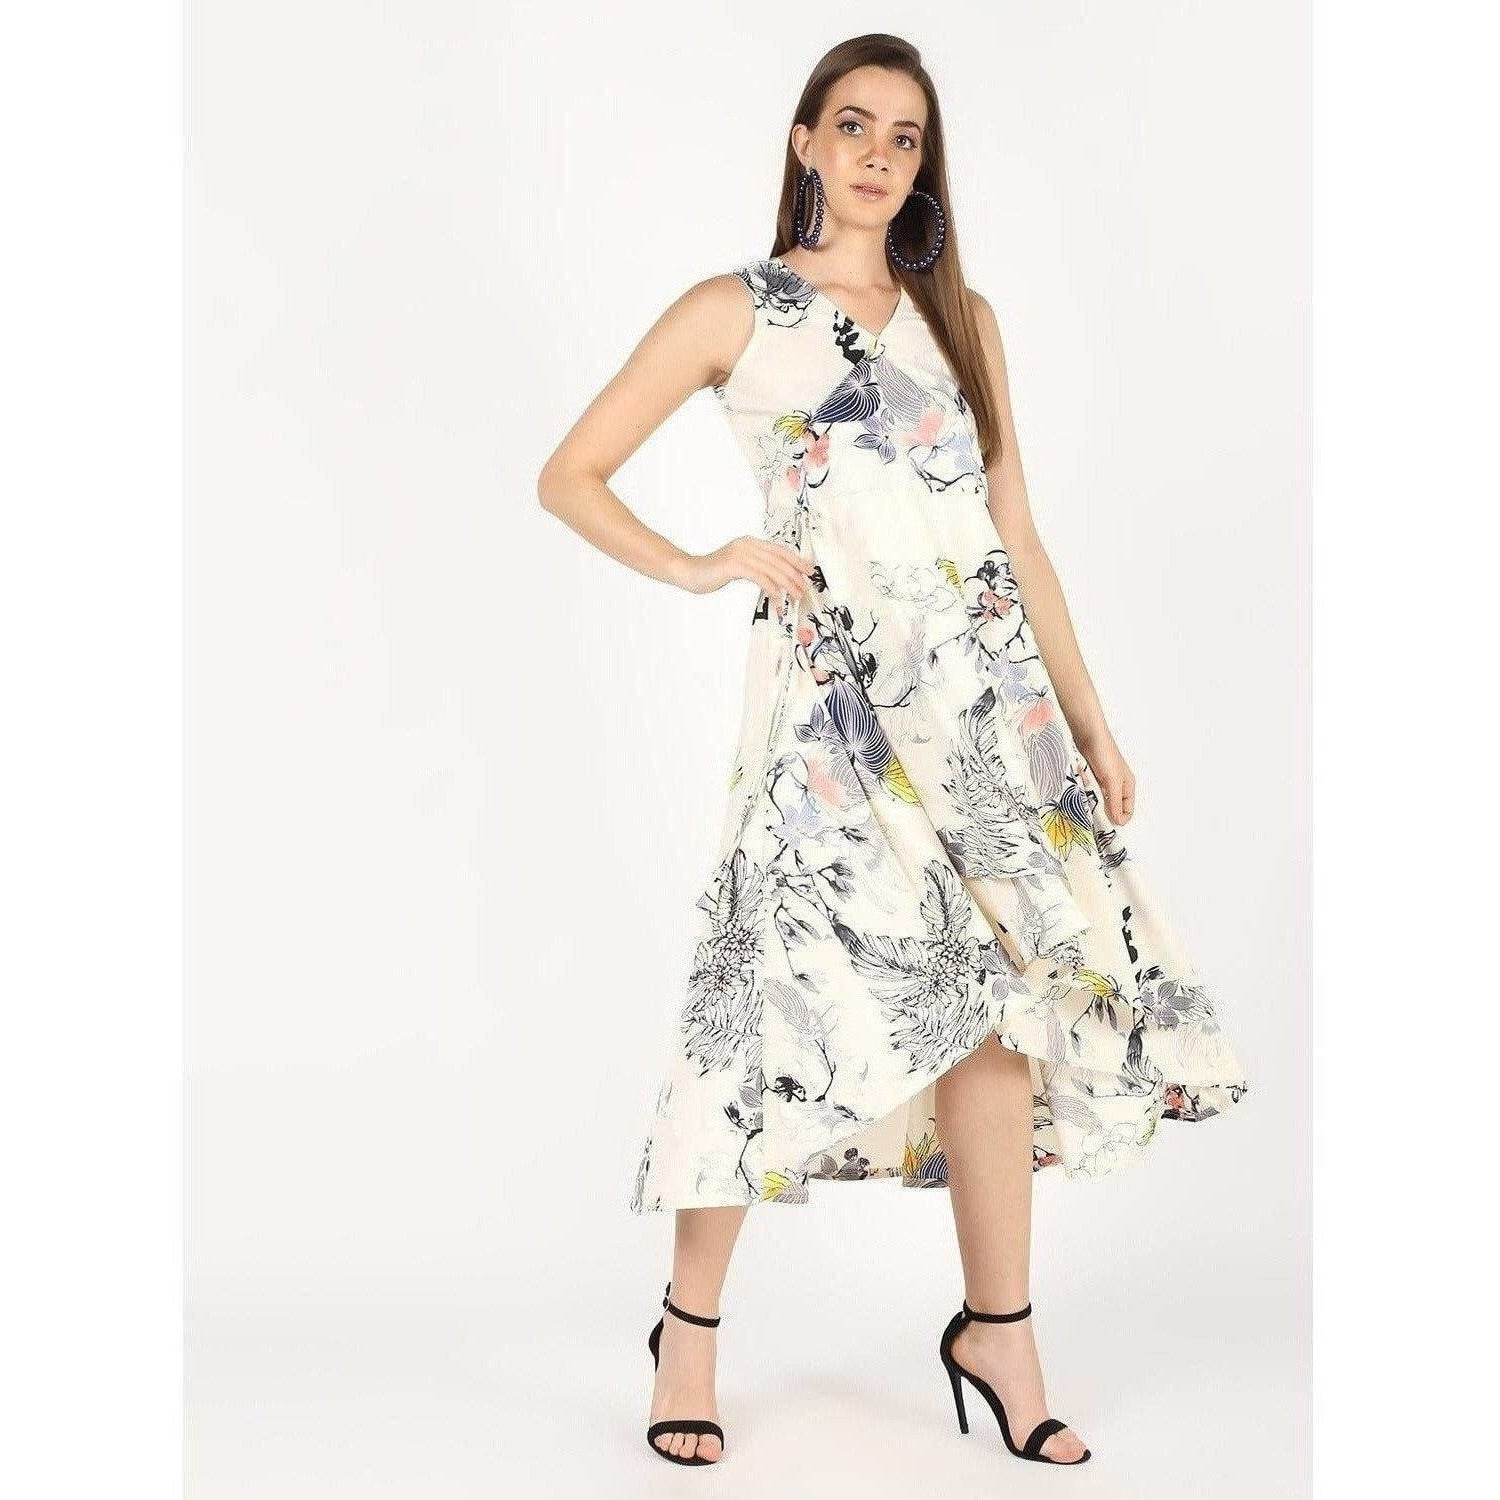 Cheera Flowral Printed Flair With Drowsting Party Dress